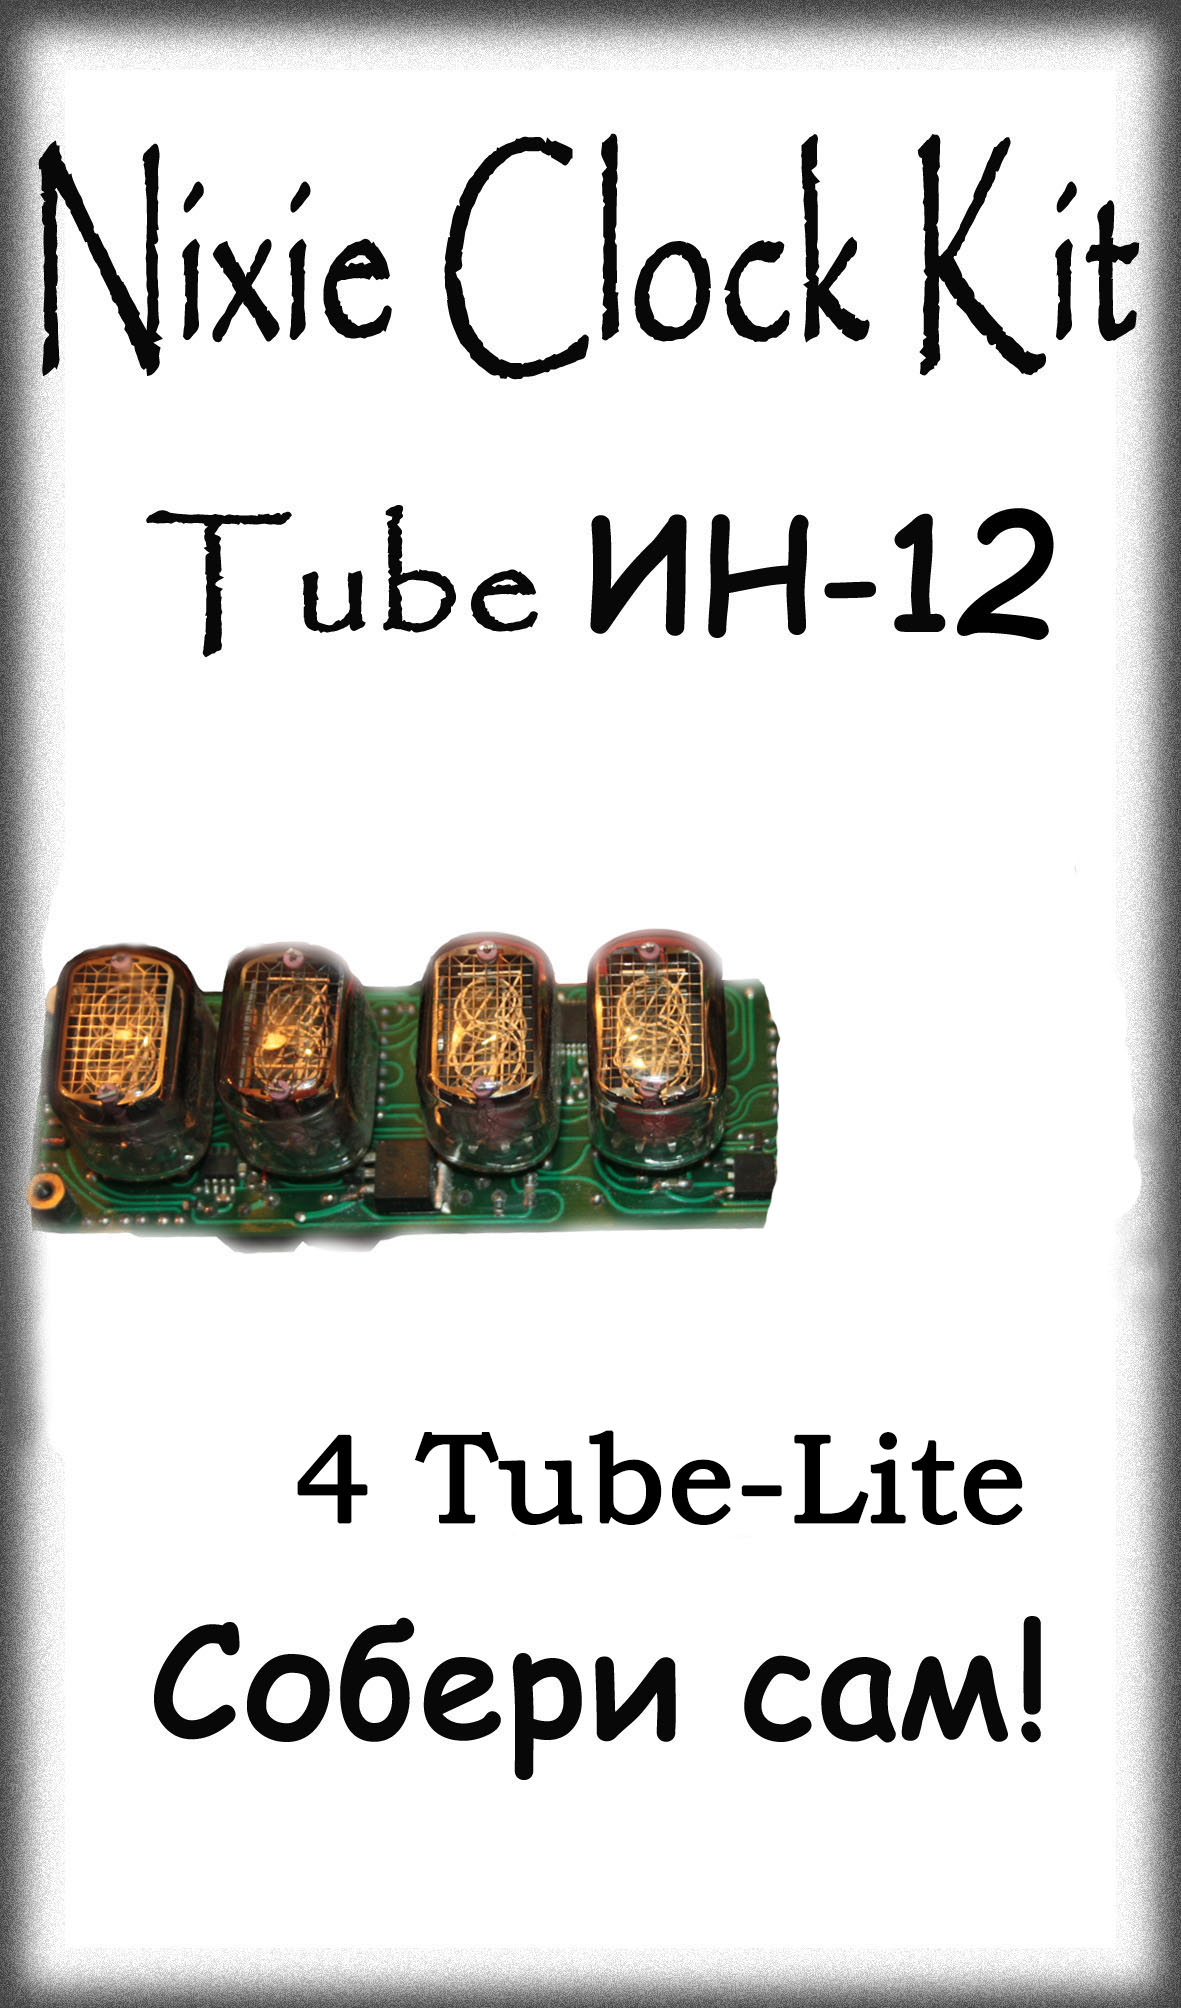 Nixie Clock Kit IN12 4-Tube Lite